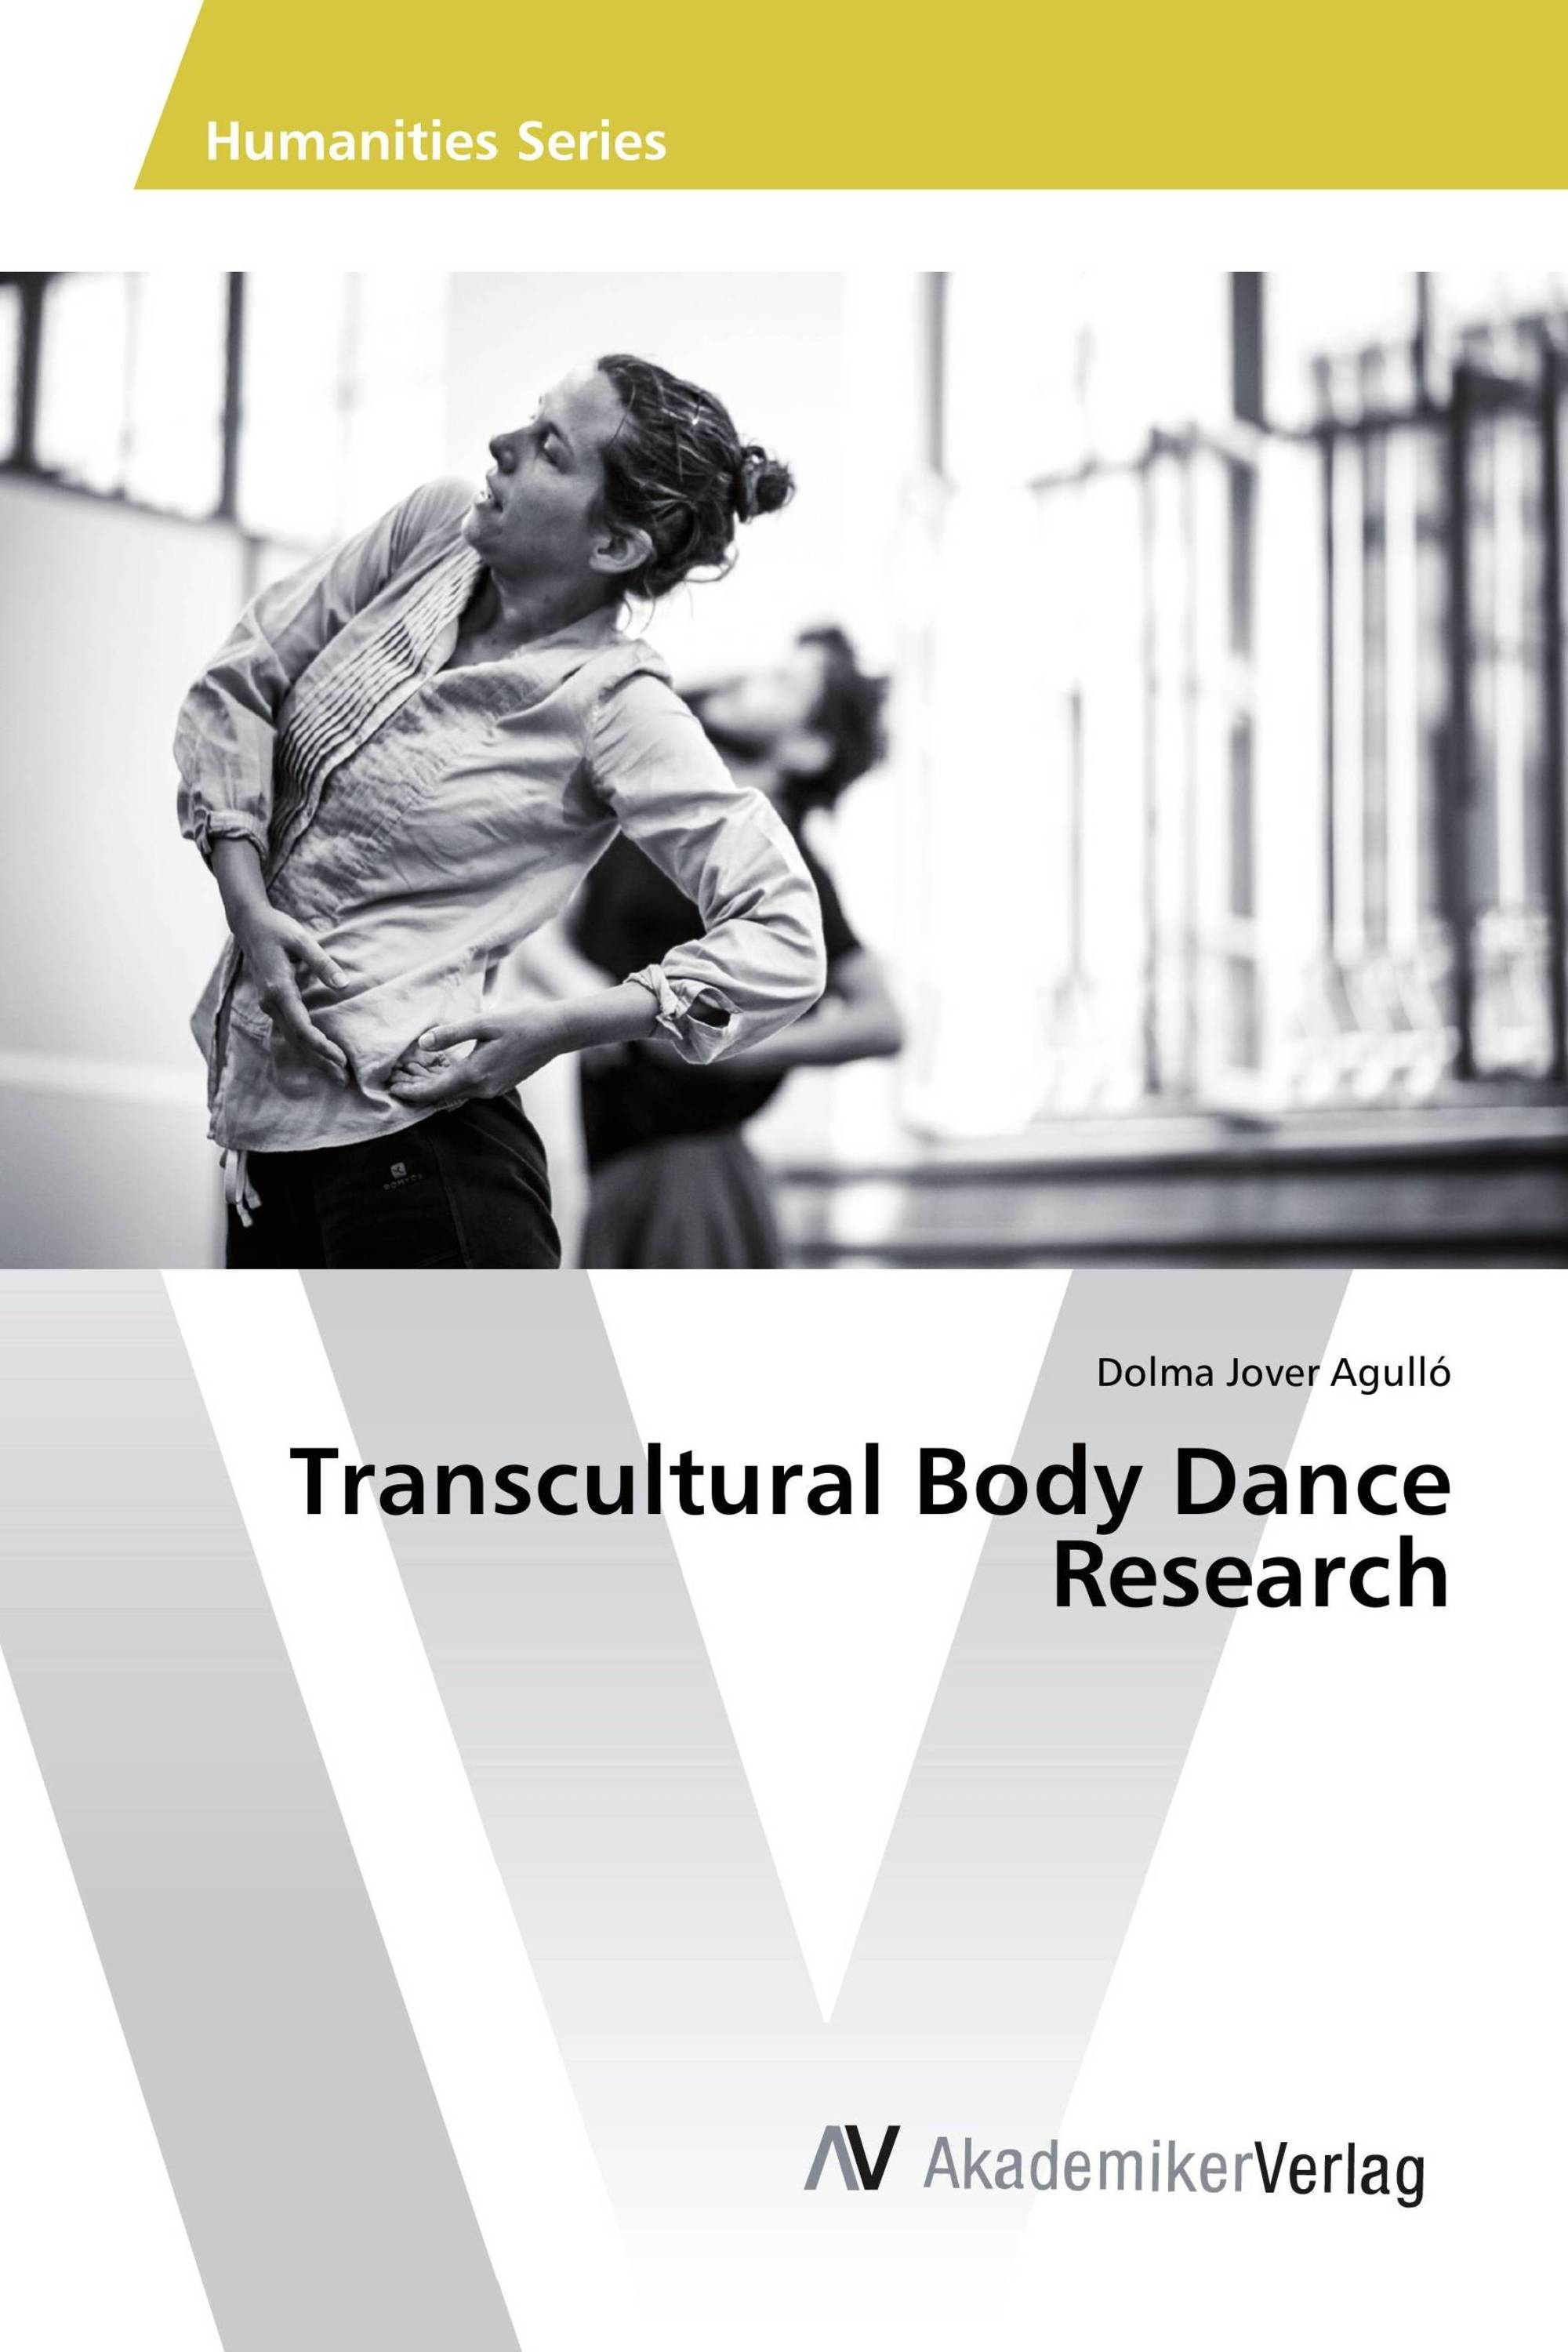 Transcultural Body Dance Research